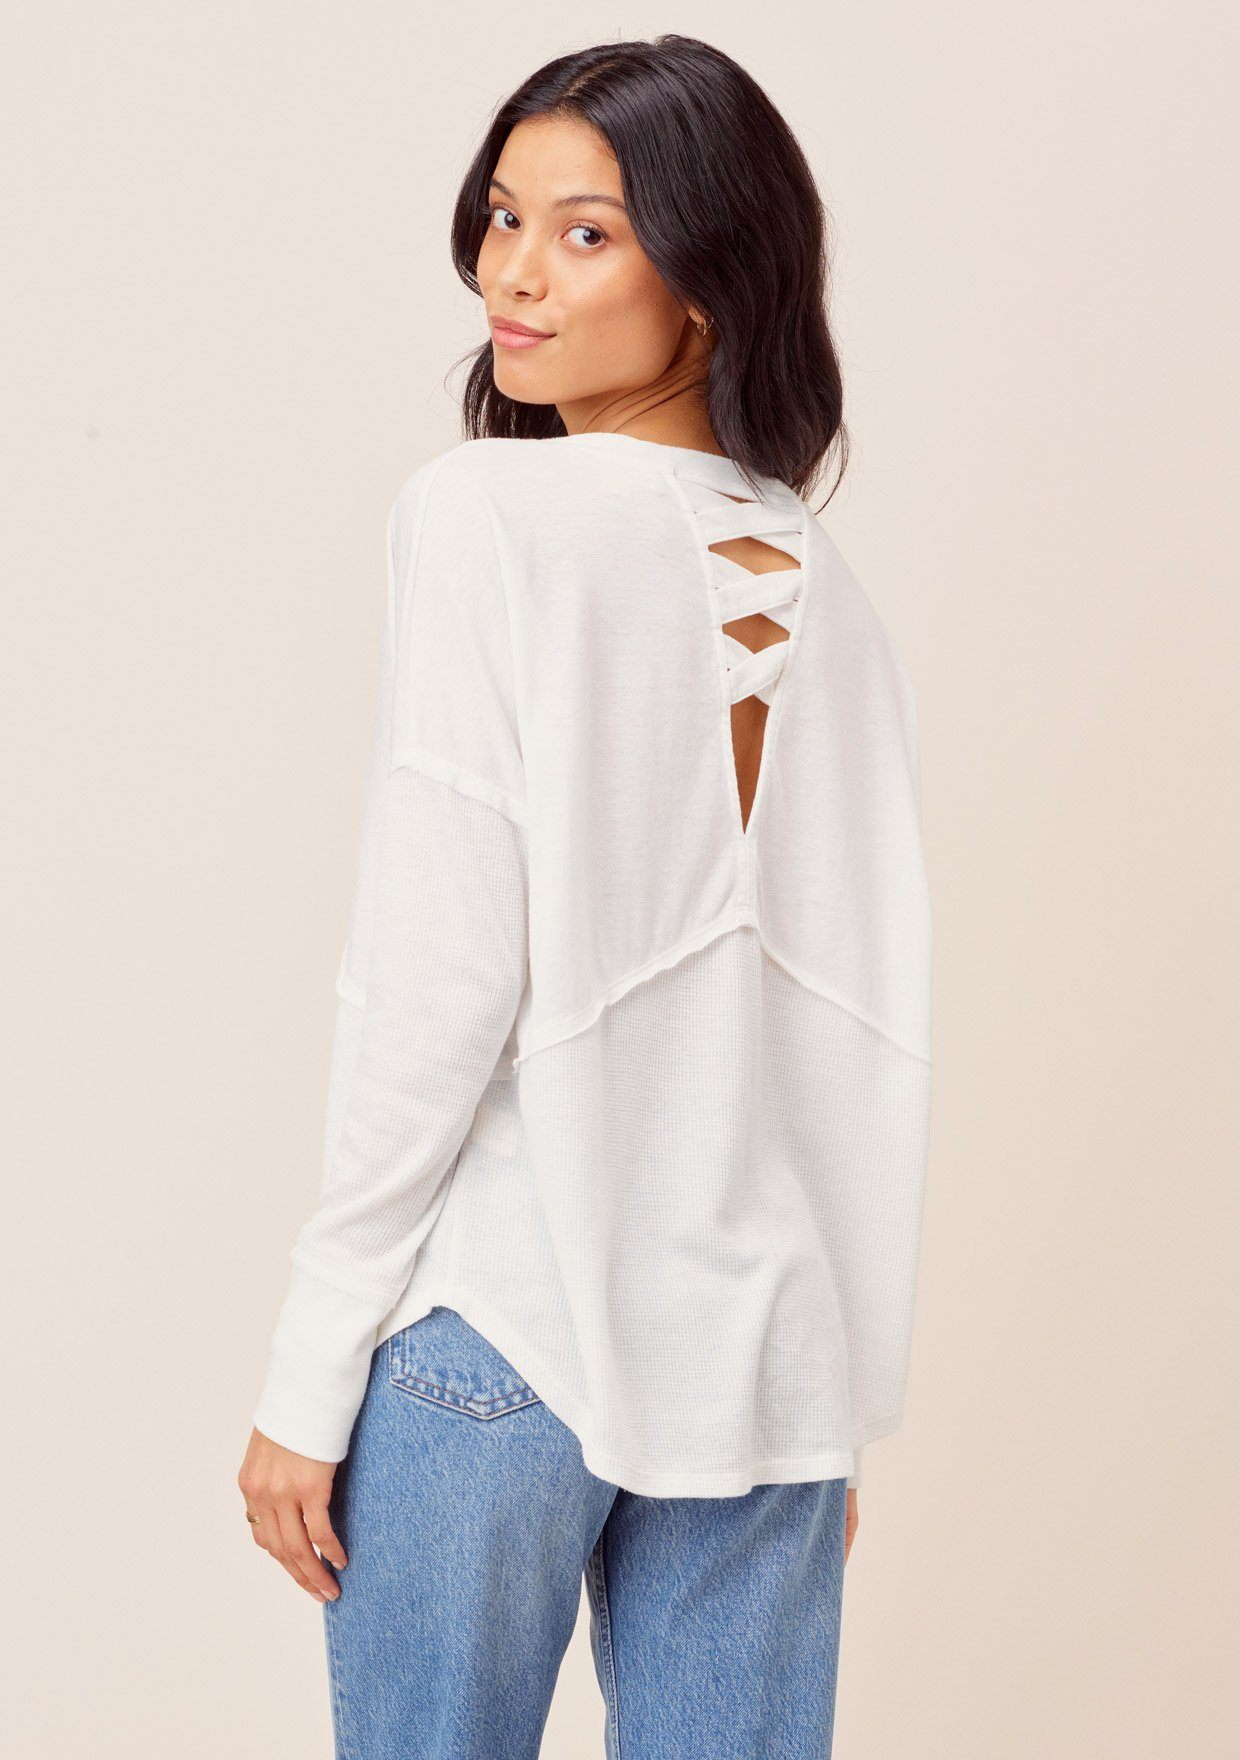 [Color: White] Long sleeve v neck thermal. Features a peek a boo back detail.